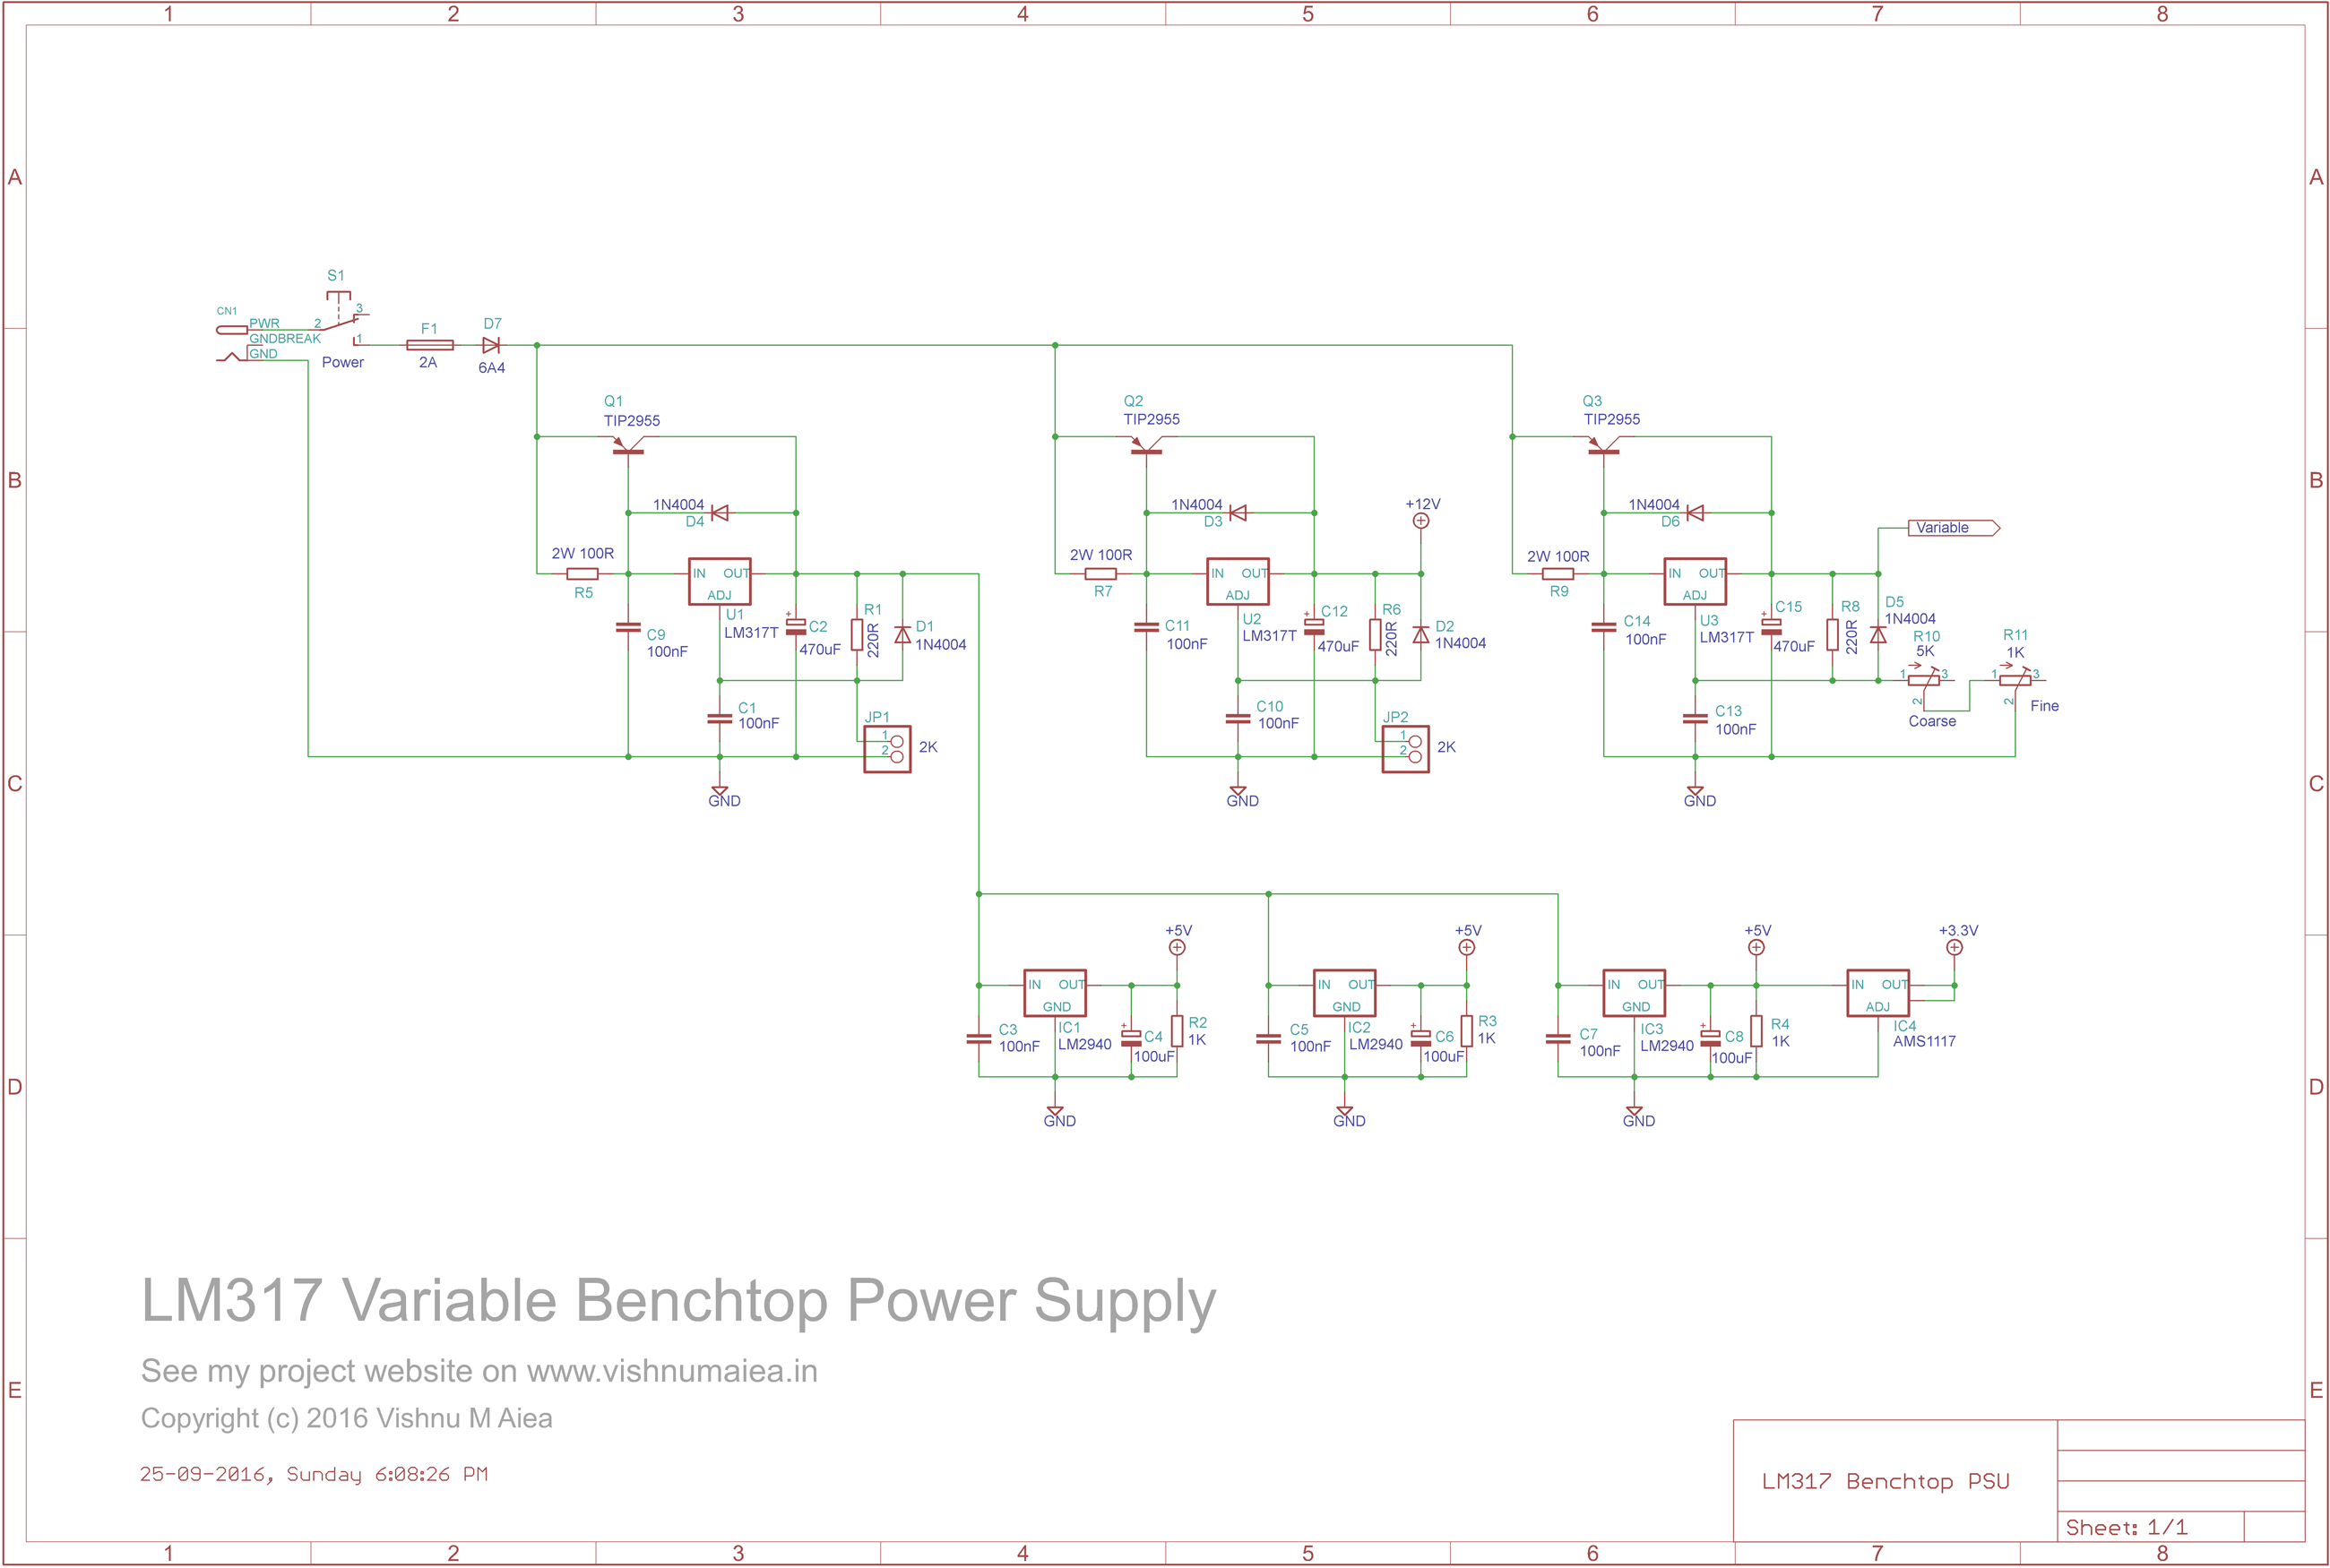 lm317 benchtop power supply schematic